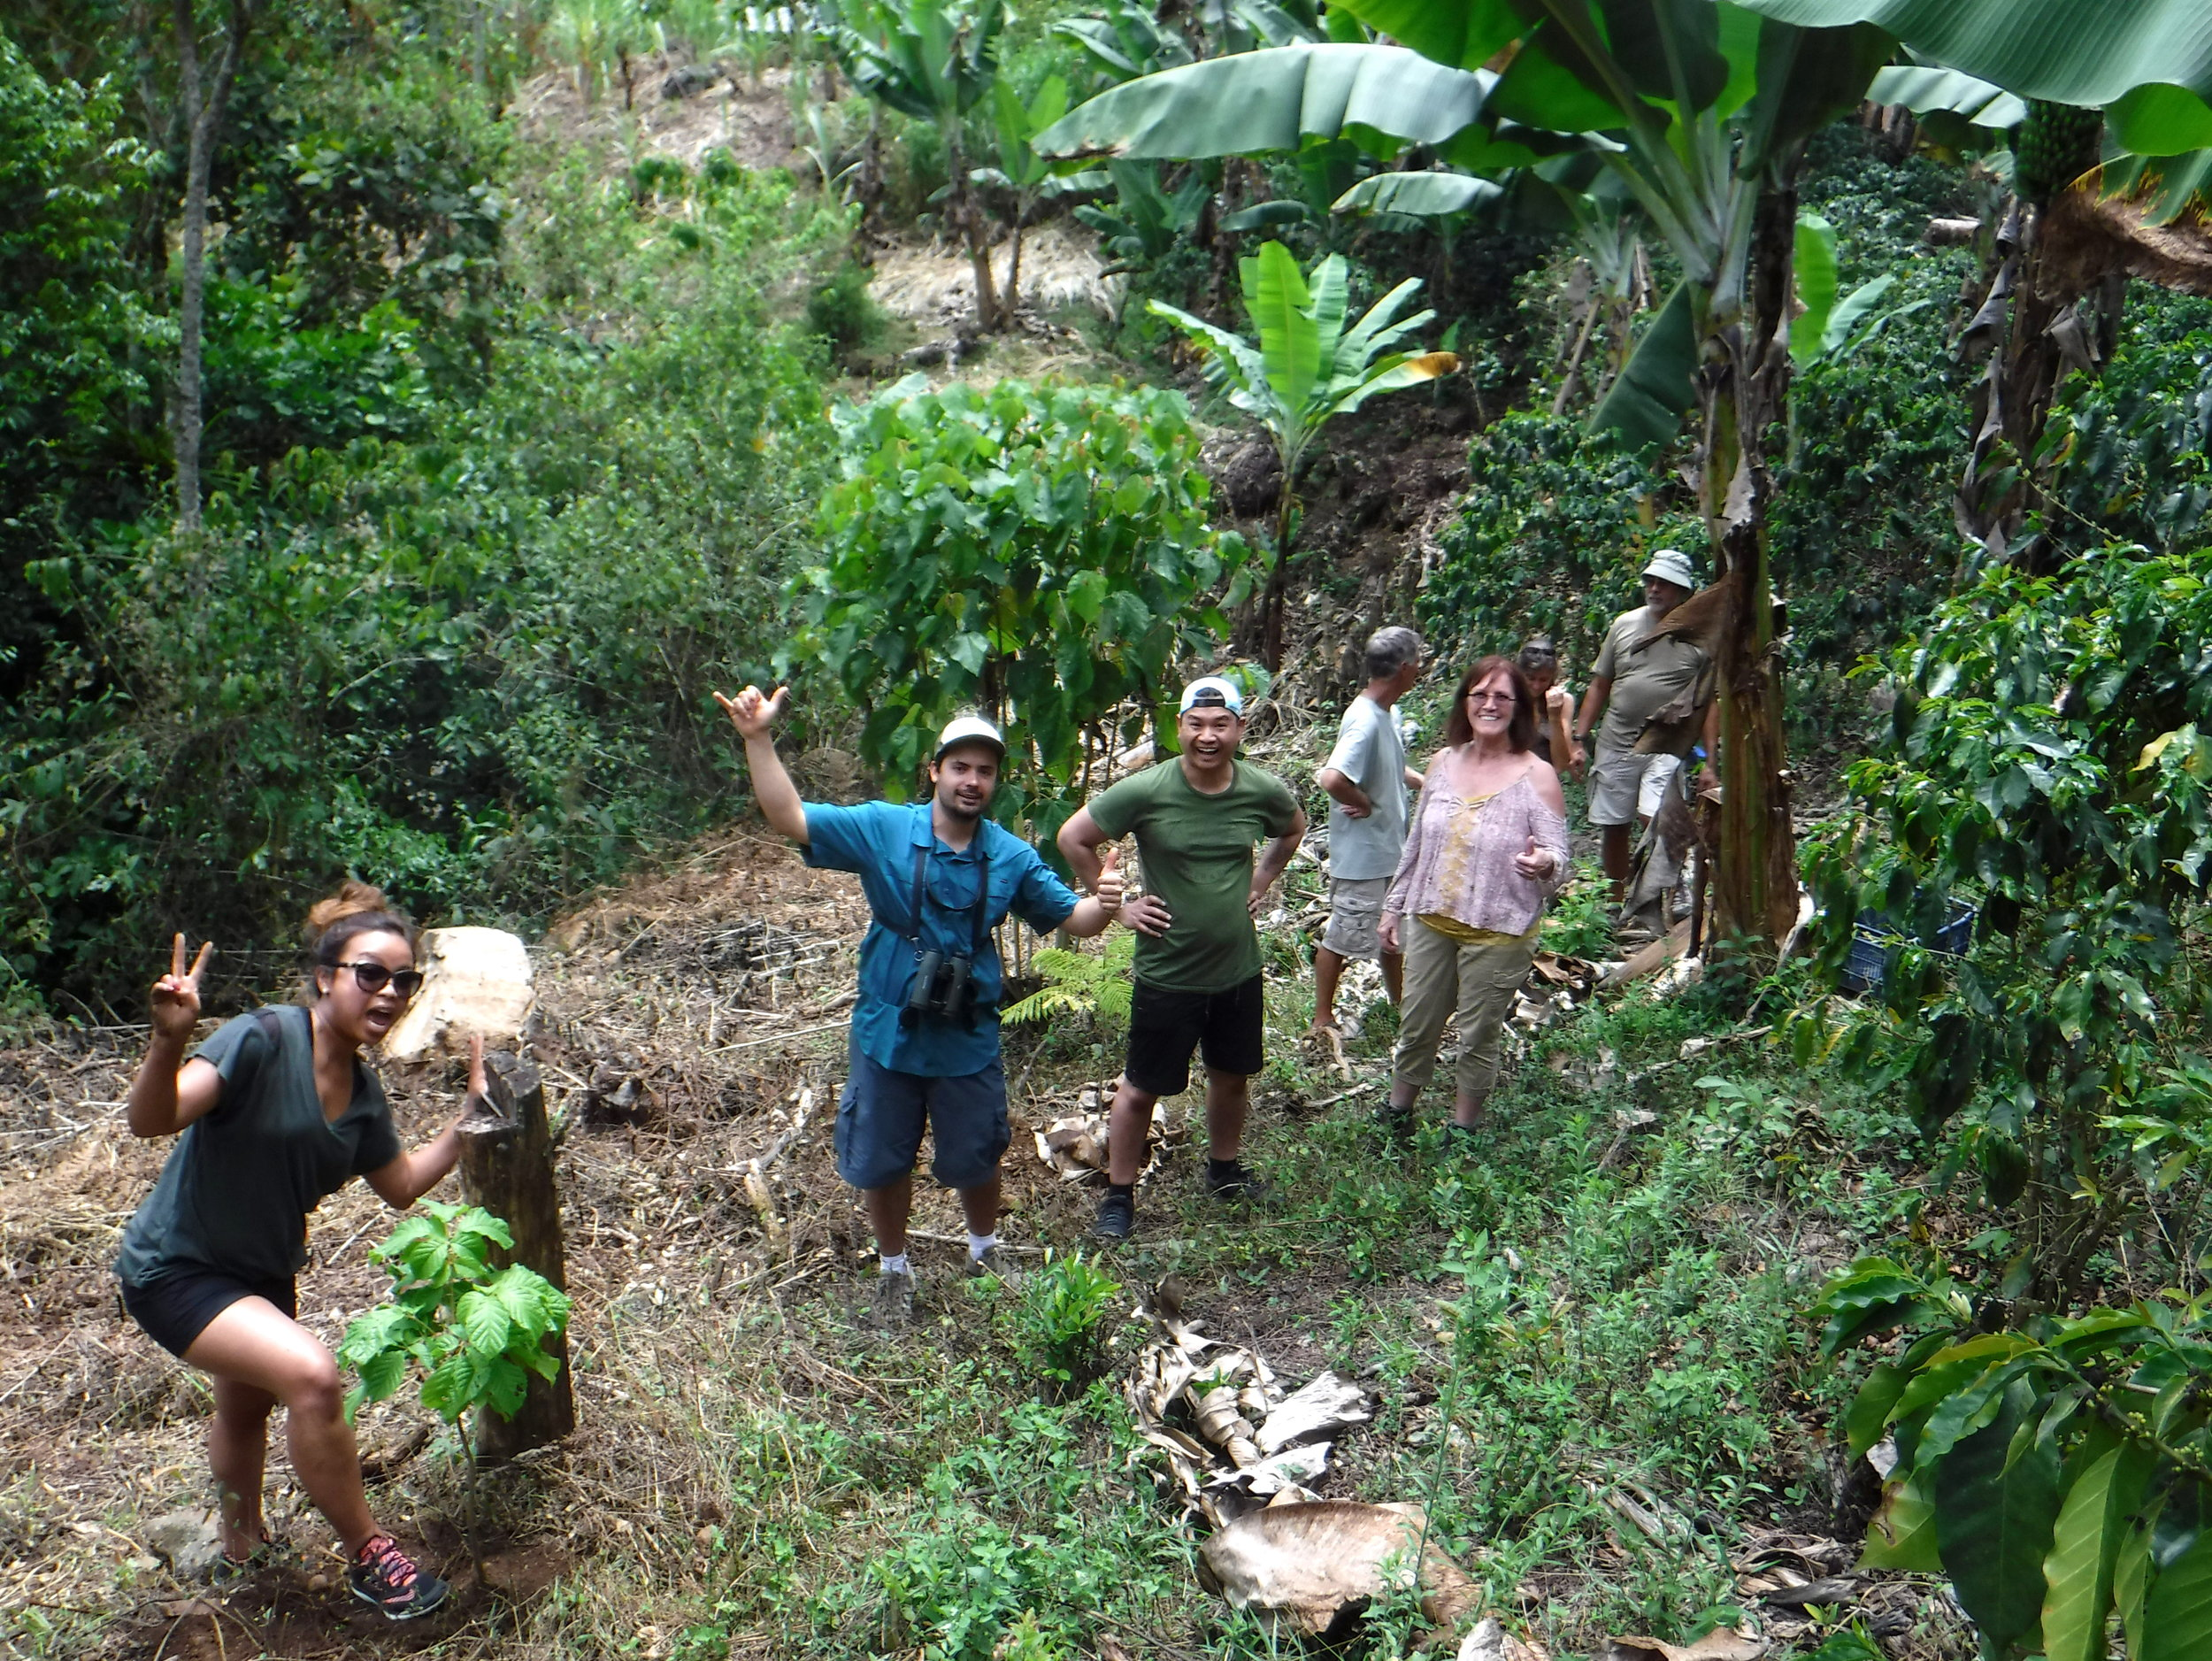 Having fun planting native endangered trees for the reforestation project we are a part of. -